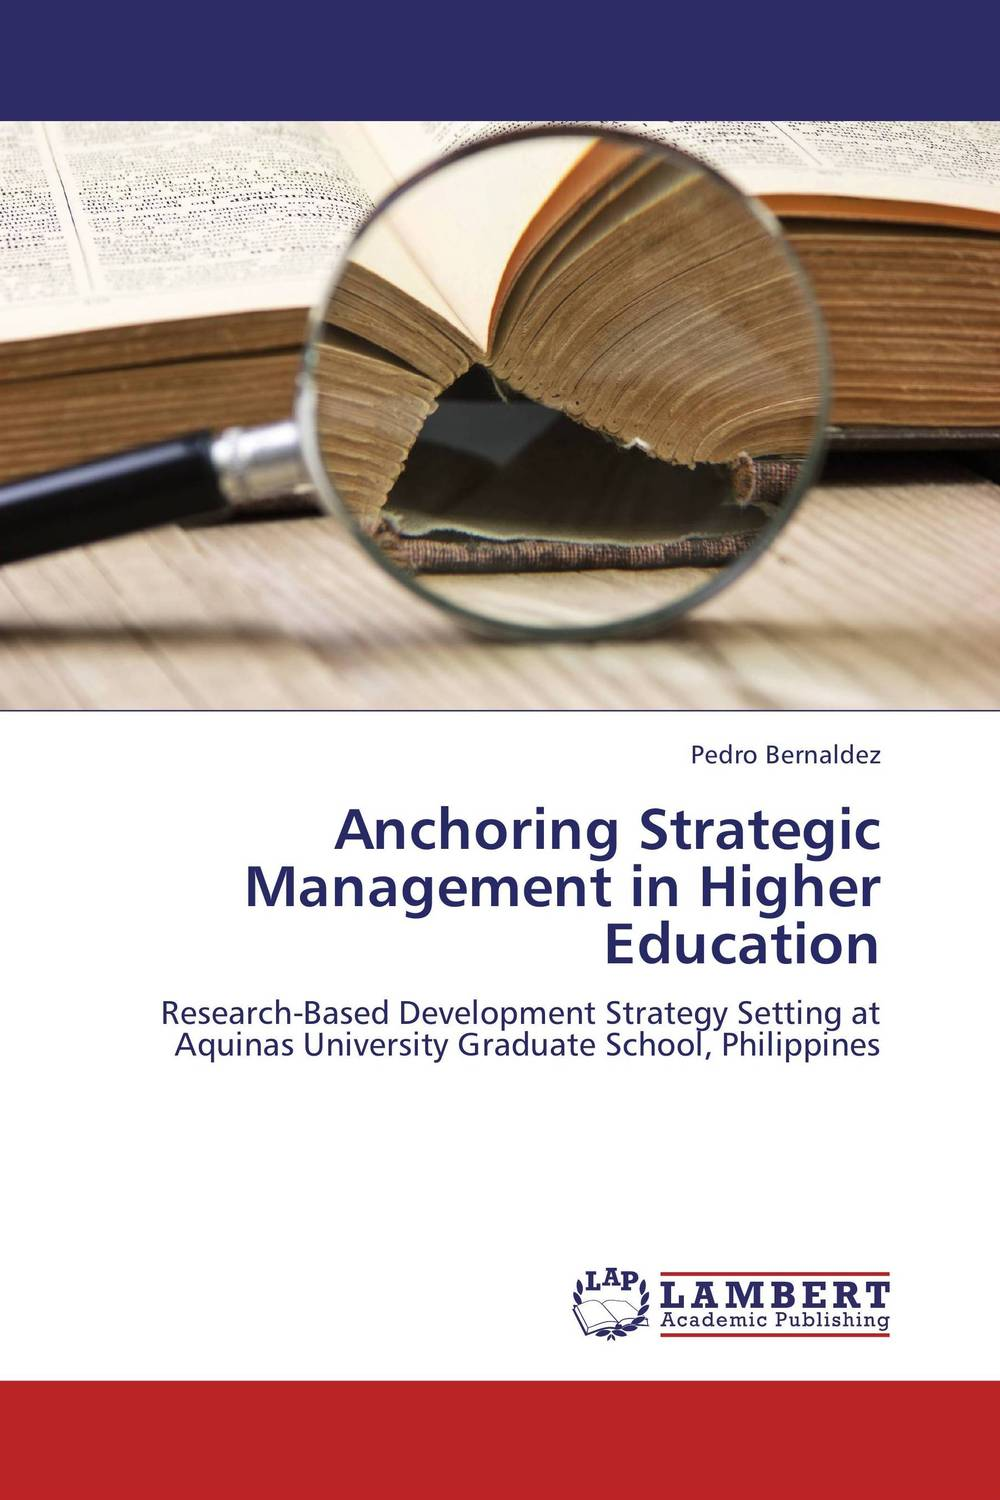 Anchoring Strategic Management in Higher Education галогенная лампа donar dn 38741 30 3v 200w ezl 02